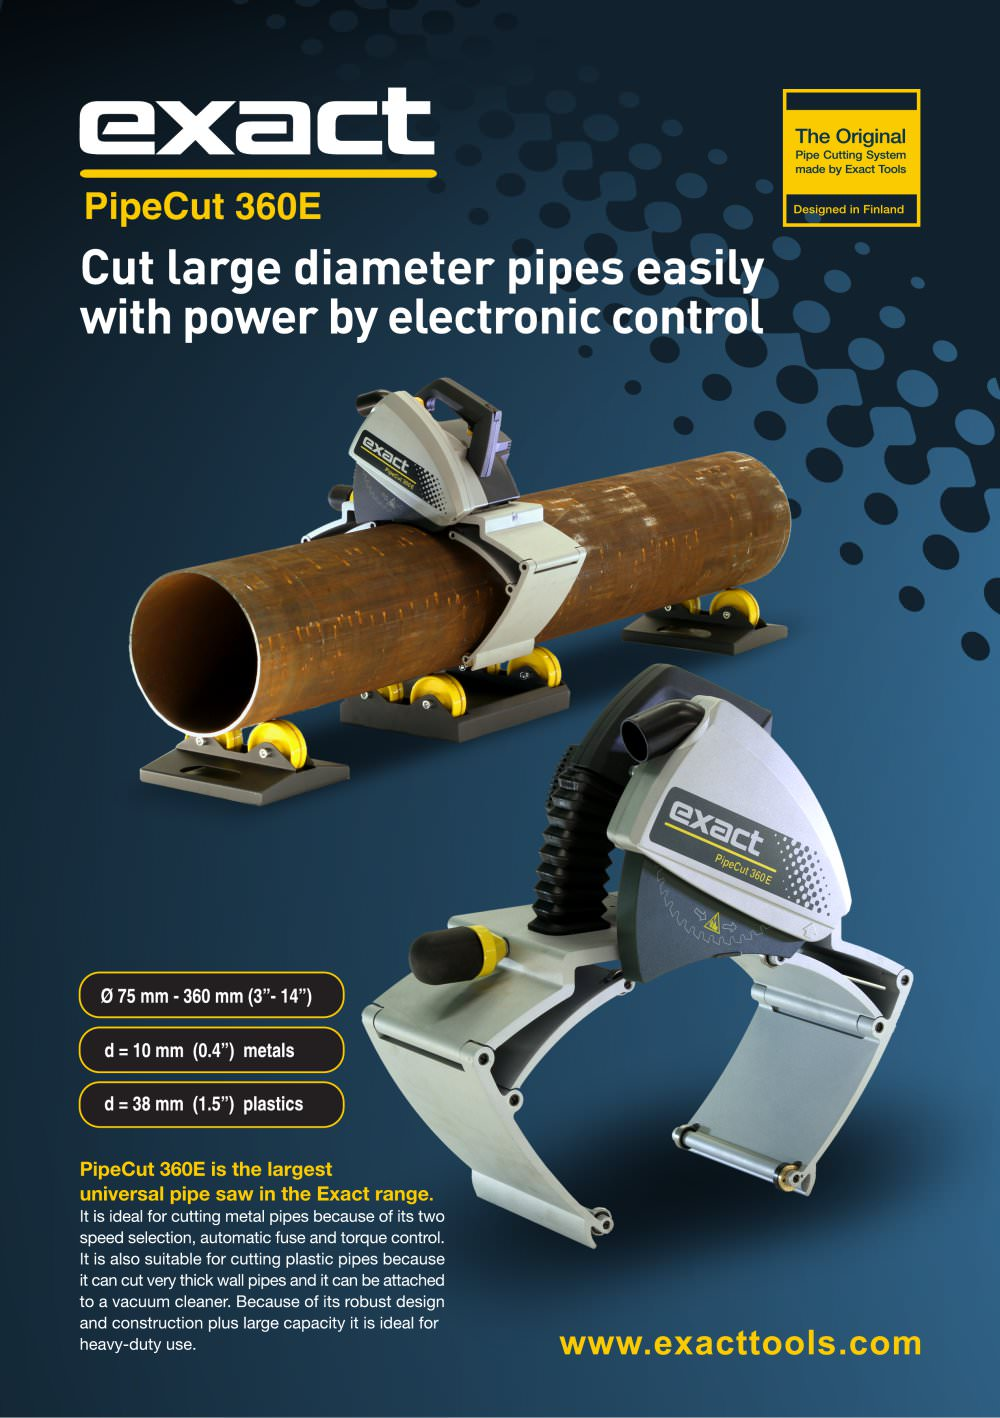 PipeCut 360E - 1 / 2 Pages  sc 1 st  Catalogues Directindustry & PipeCut 360E - Exact Tools Oy - PDF Catalogue | Technical ...